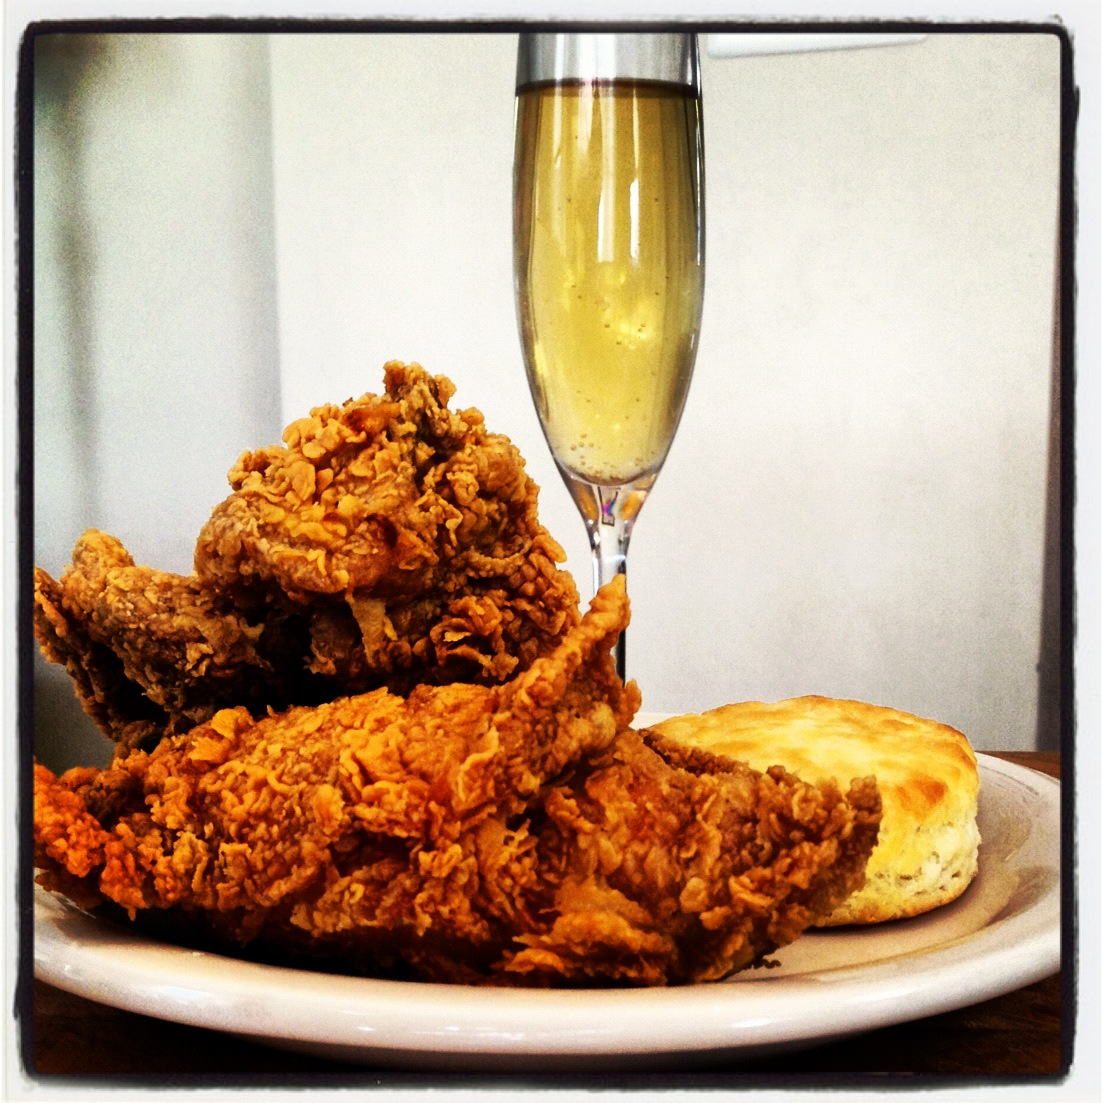 Cork's Fried Chicken and Champagne